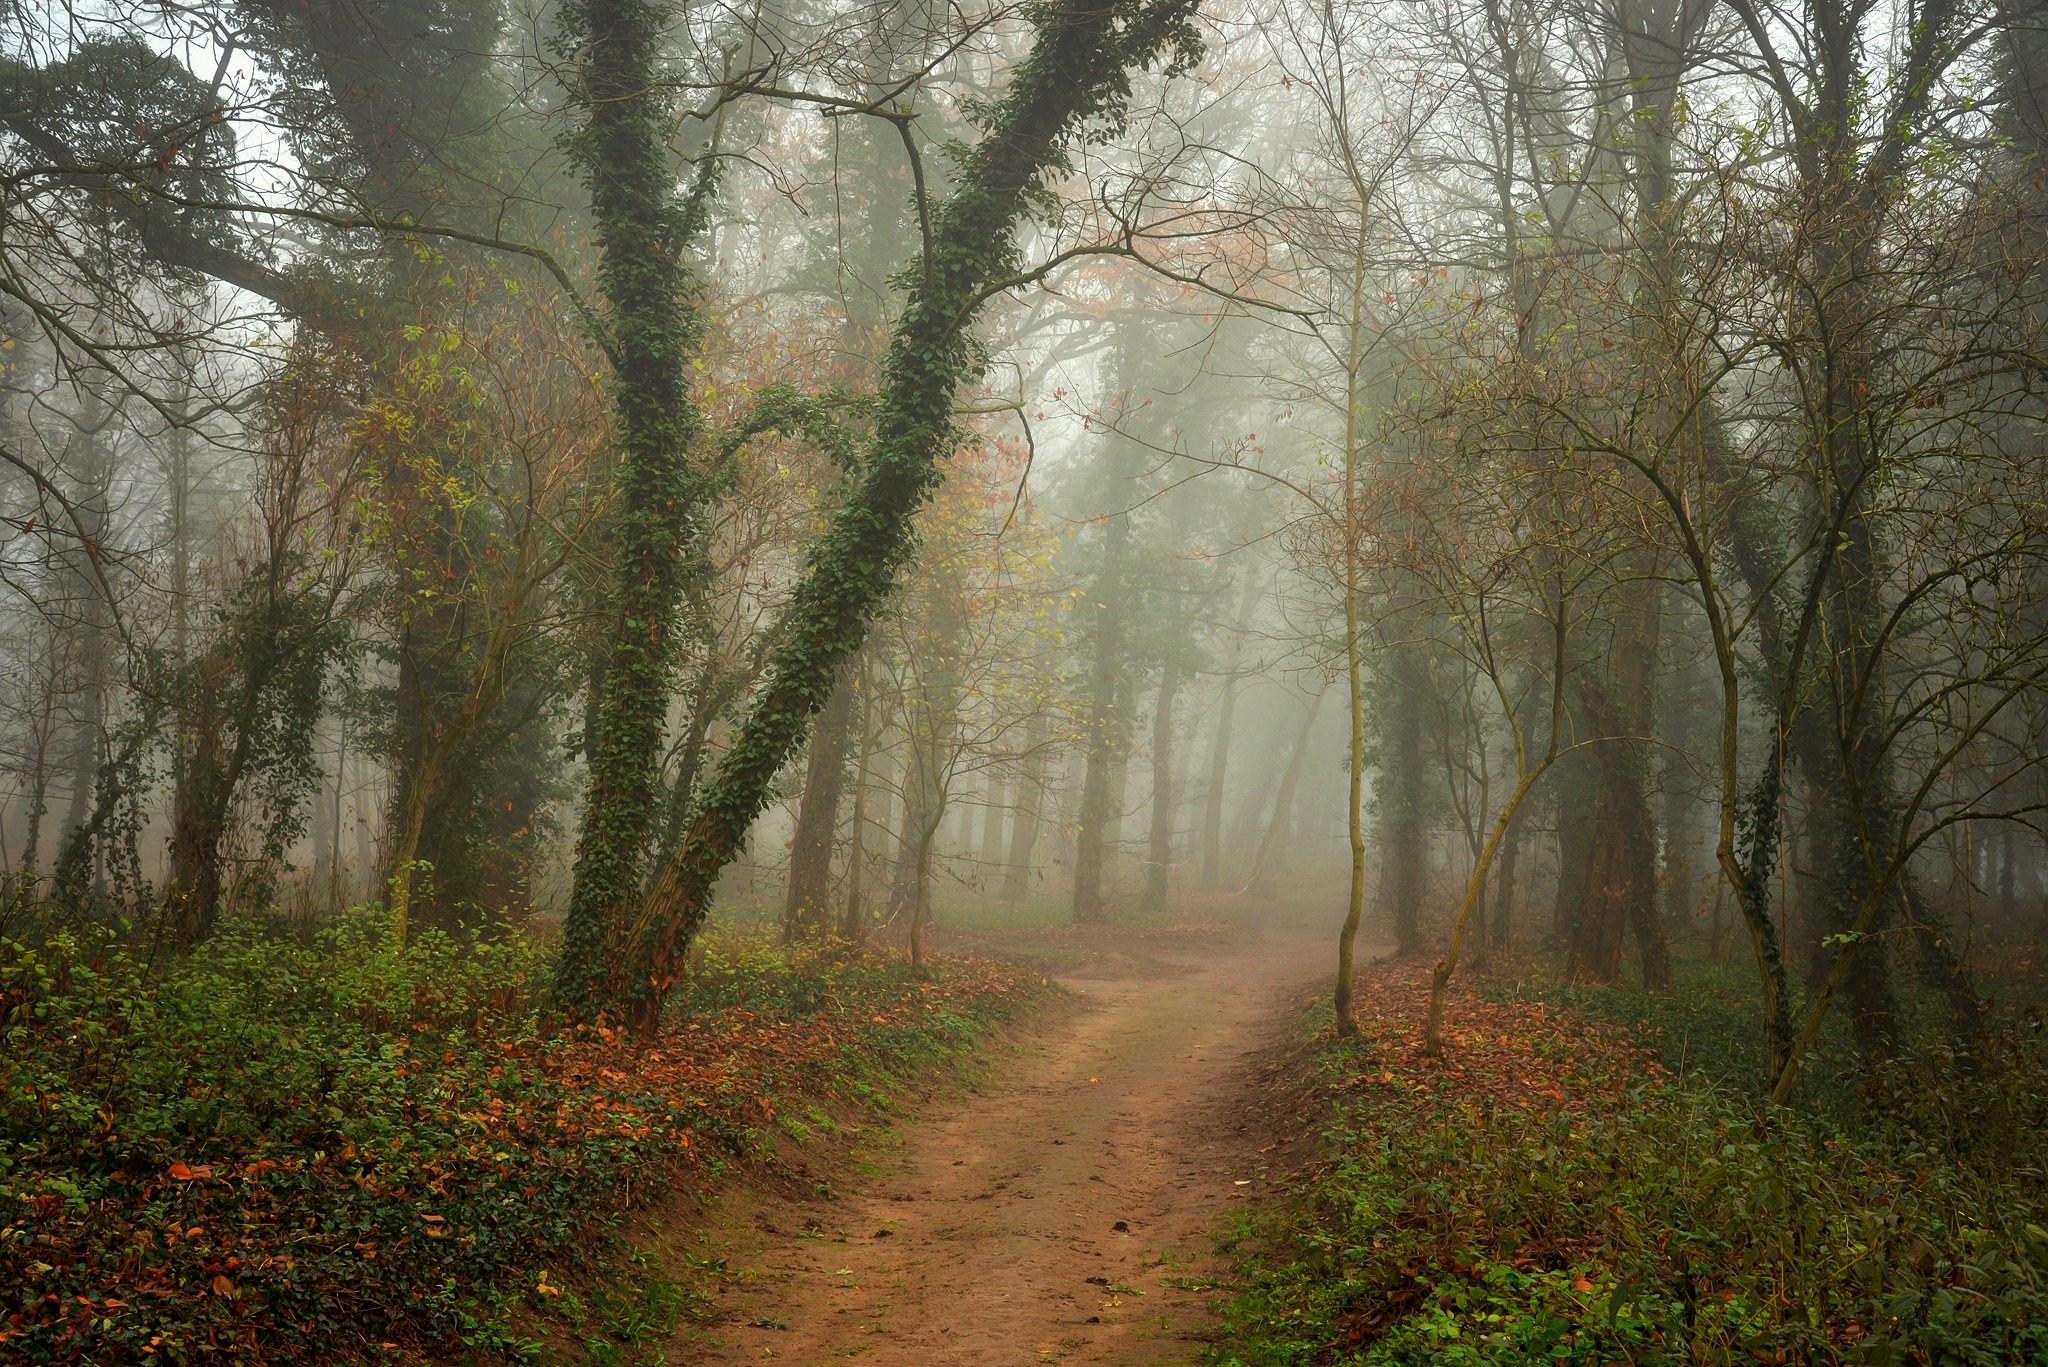 волшебный сад magical garden trees mist foggy road path dranikowski magic autumn fall green, Radoslaw Dranikowski